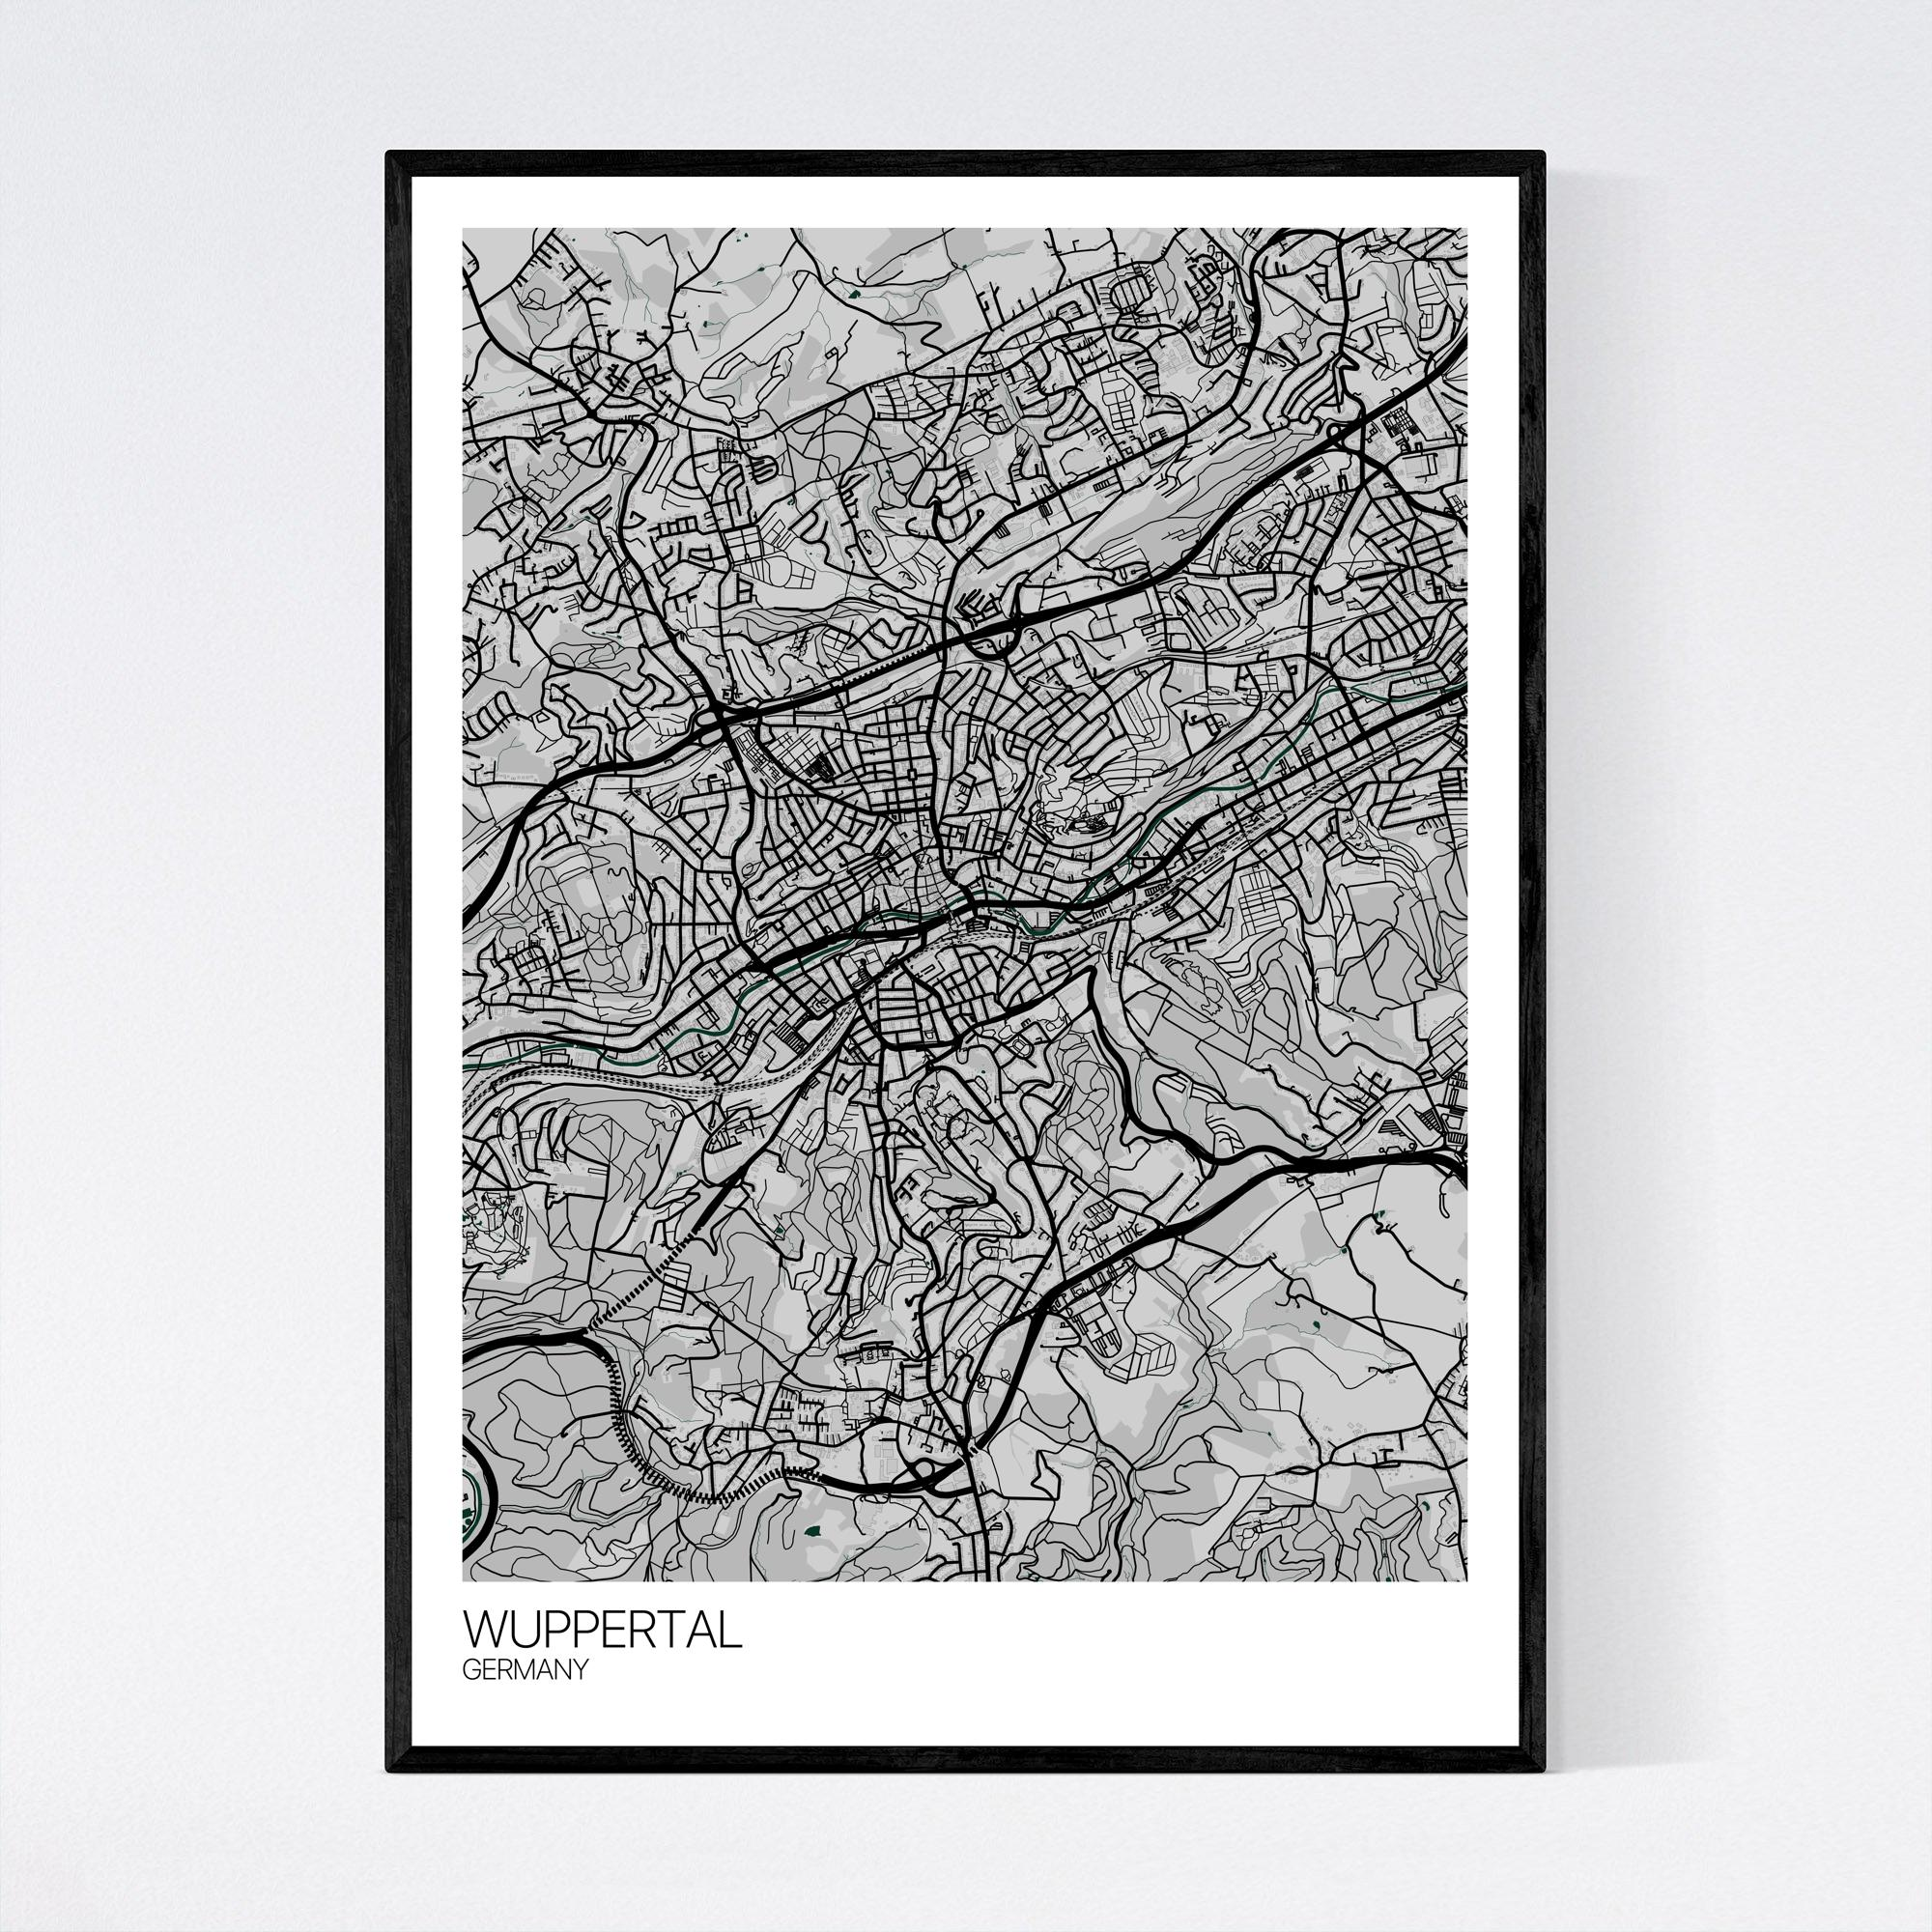 Wuppertal Map Art Print - Fast International Shipping ... on rome germany map, bad lippspringe germany map, plochingen germany map, trier germany map, lubbecke germany map, hellenthal germany map, kochel germany map, havixbeck germany map, lengerich germany map, goerlitz germany map, lampertheim germany map, mayence germany map, blankenheim germany map, barmen germany map, erkelenz germany map, donaueschingen germany map, landsberg am lech germany map, ochtrup germany map, colditz germany map,